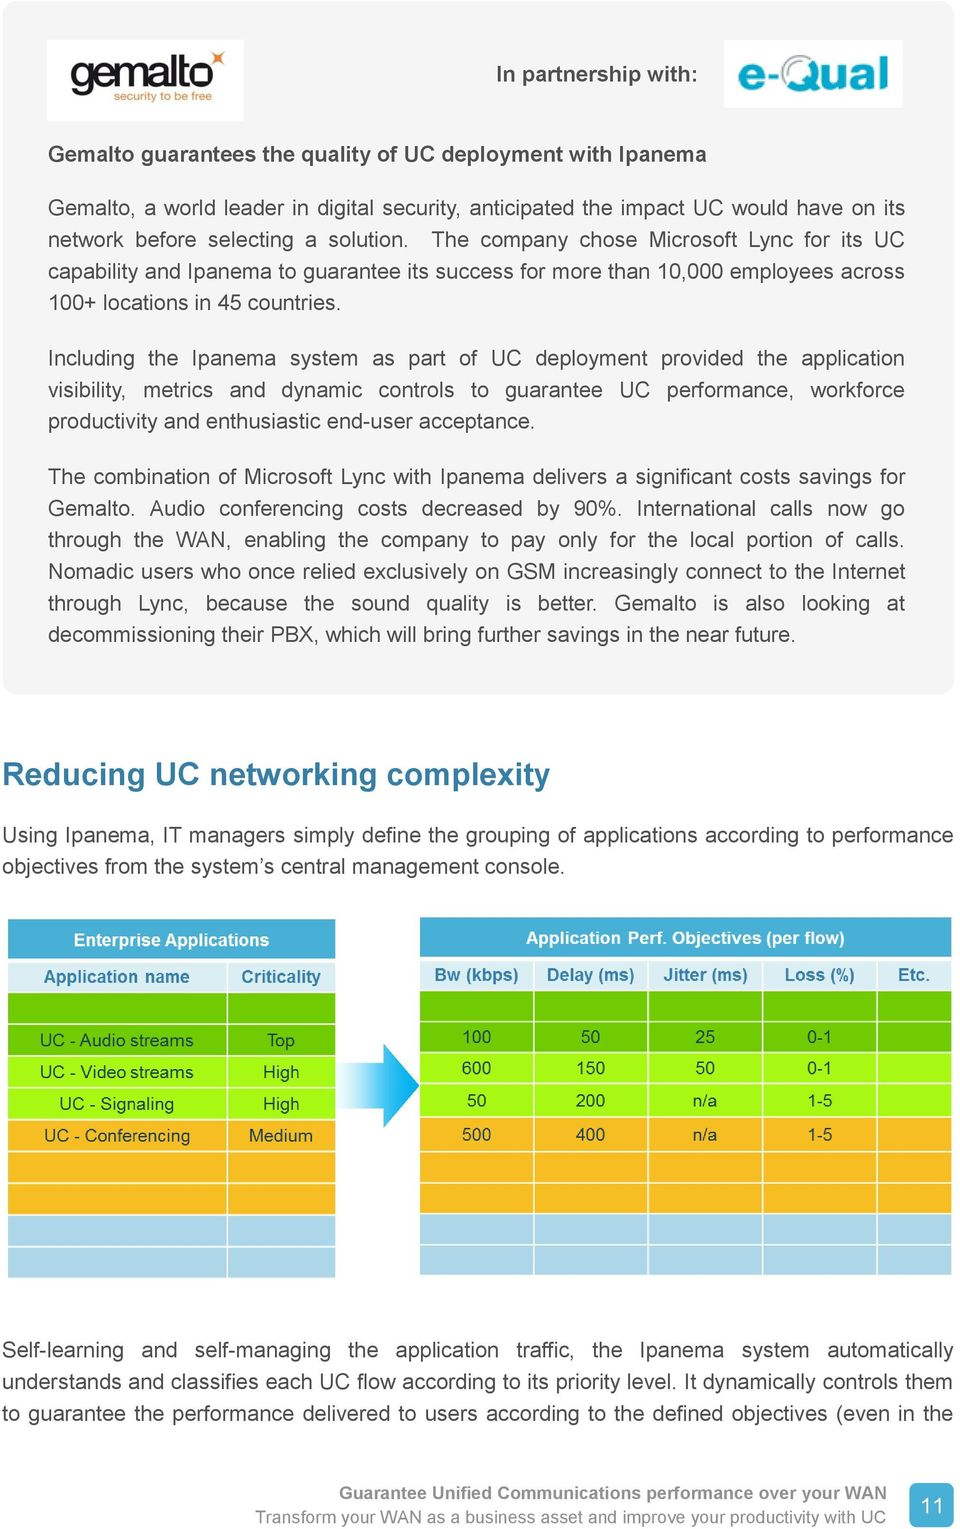 Including the Ipanema system as part of UC deployment provided the application visibility, metrics and dynamic controls to guarantee UC performance, workforce productivity and enthusiastic end-user